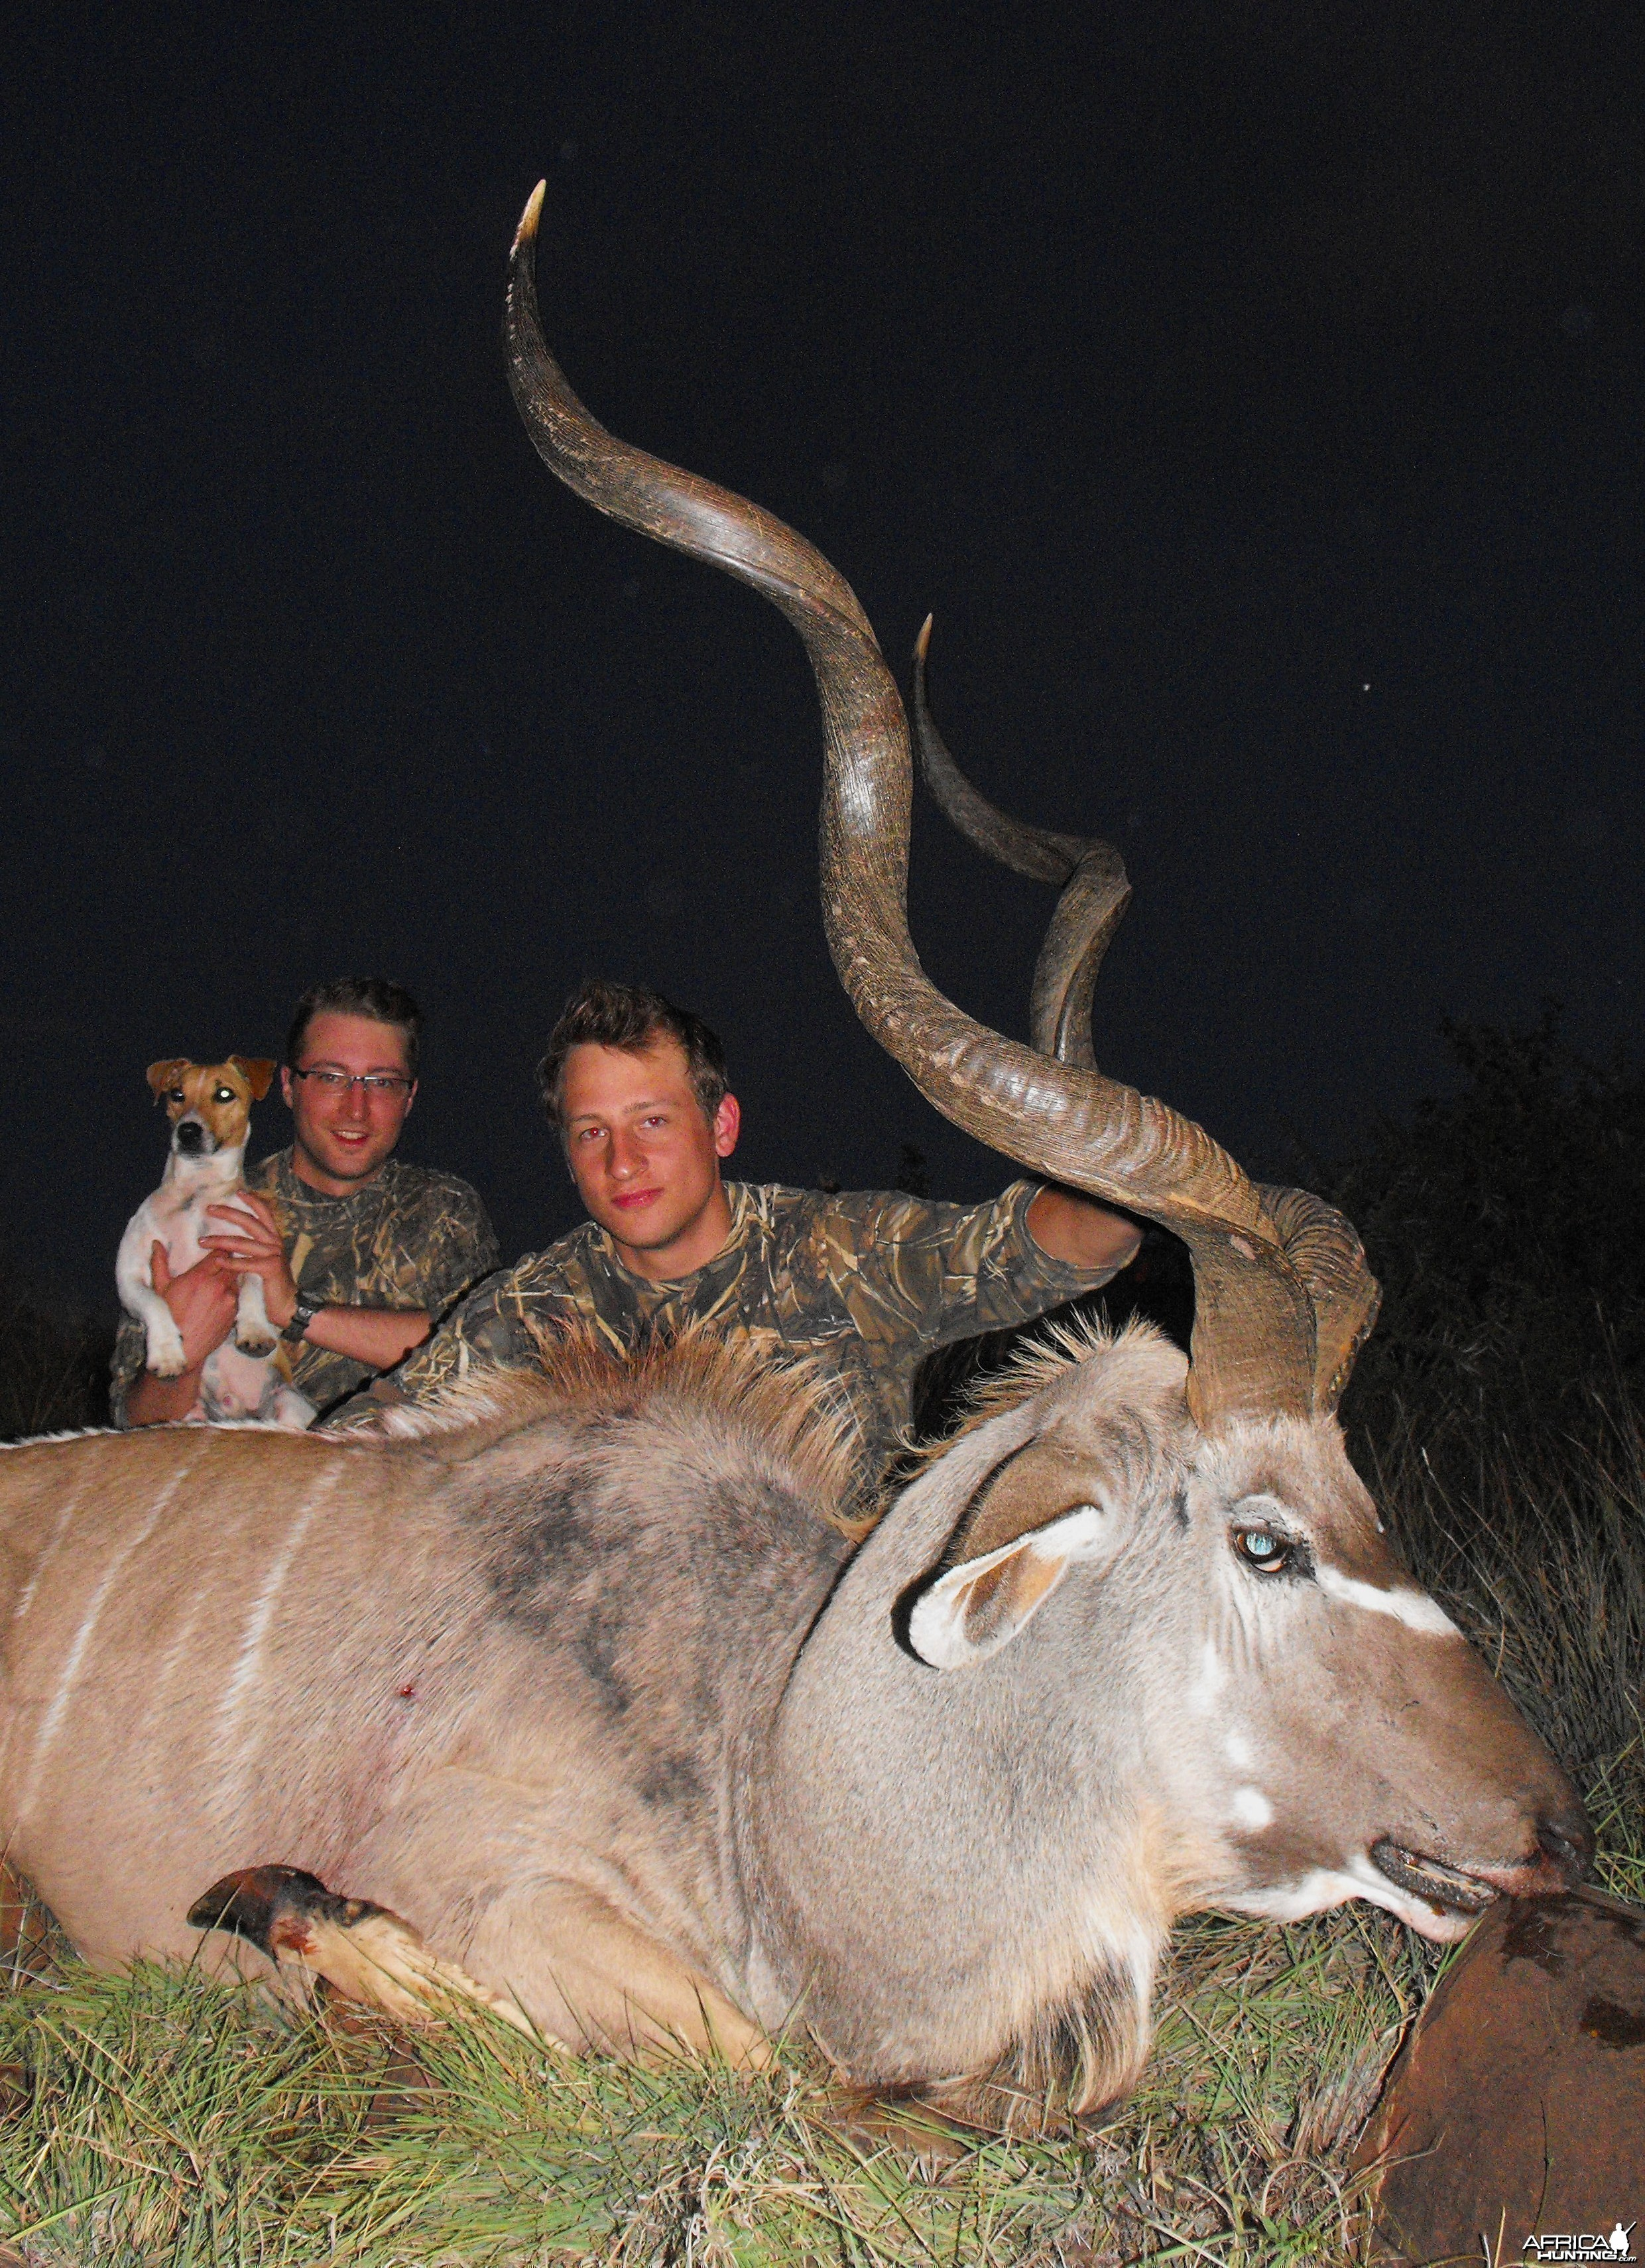 Sweet Kudu hunt!